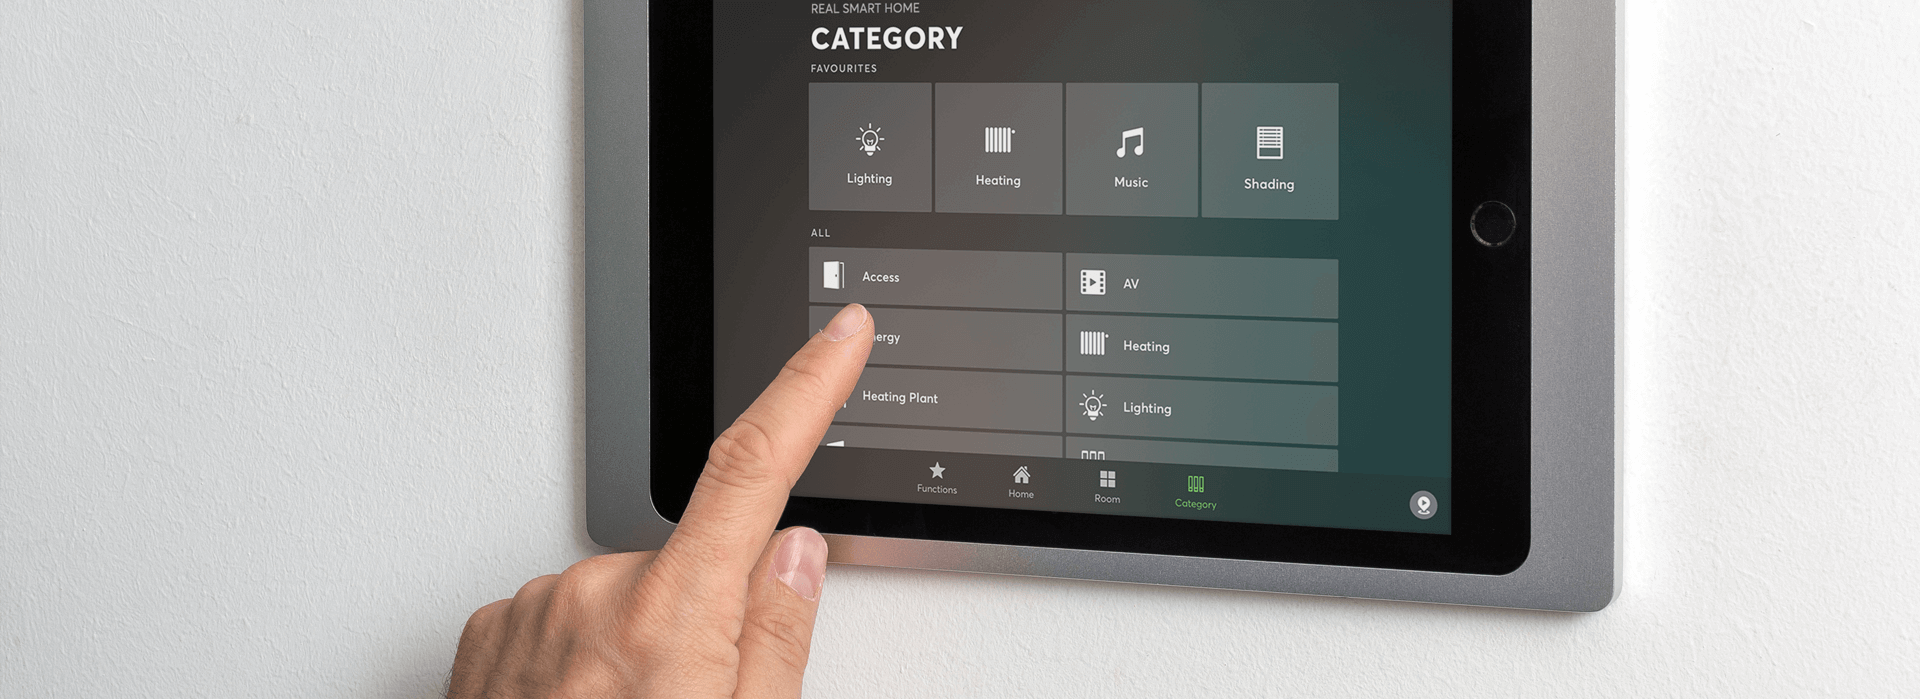 Full screen image of smart home touchscreen control panel.